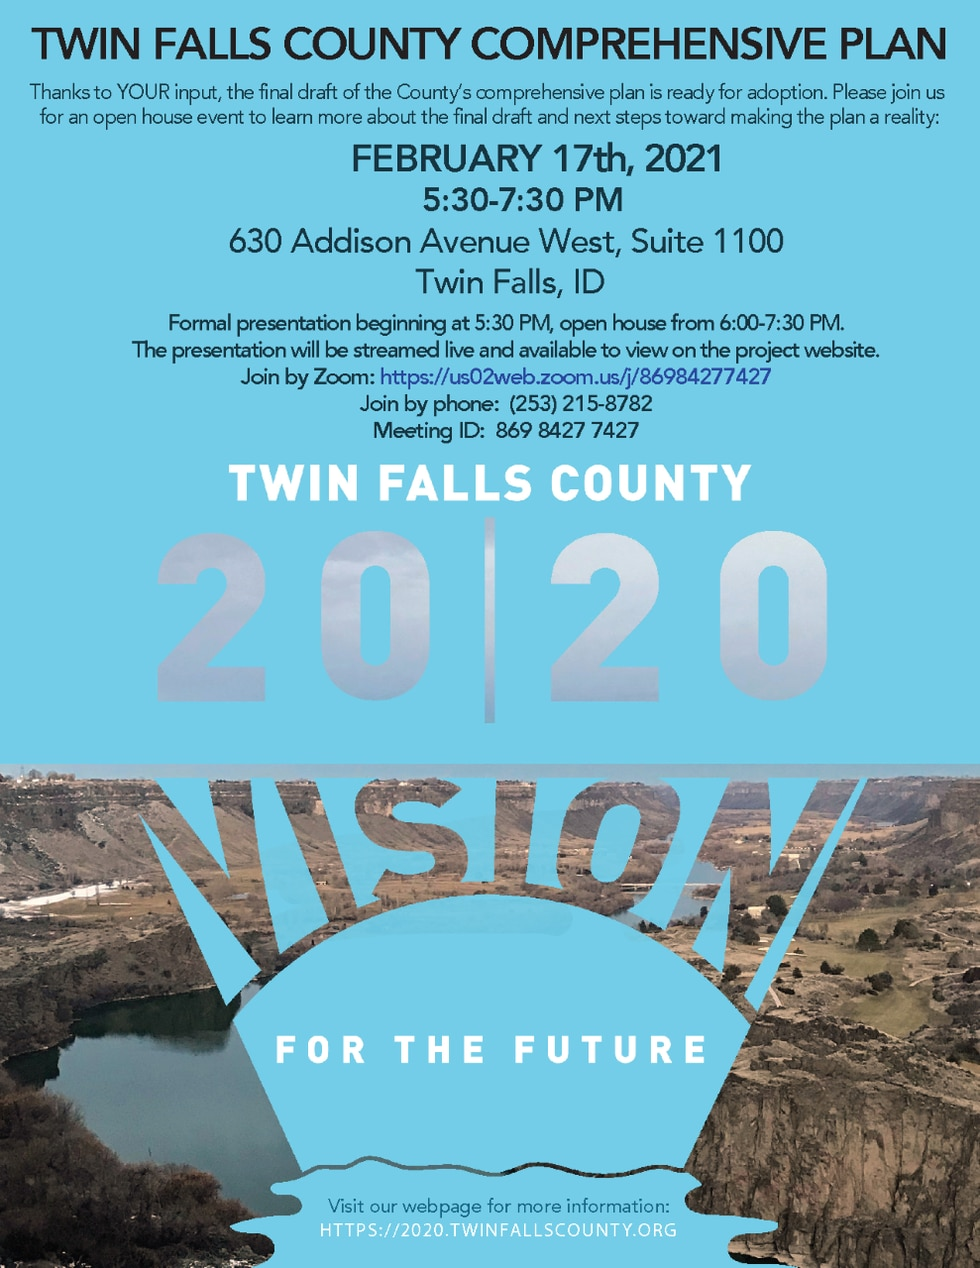 Residents are invited to view the updated comprehensive plan on Wednesday, Feb. 17.